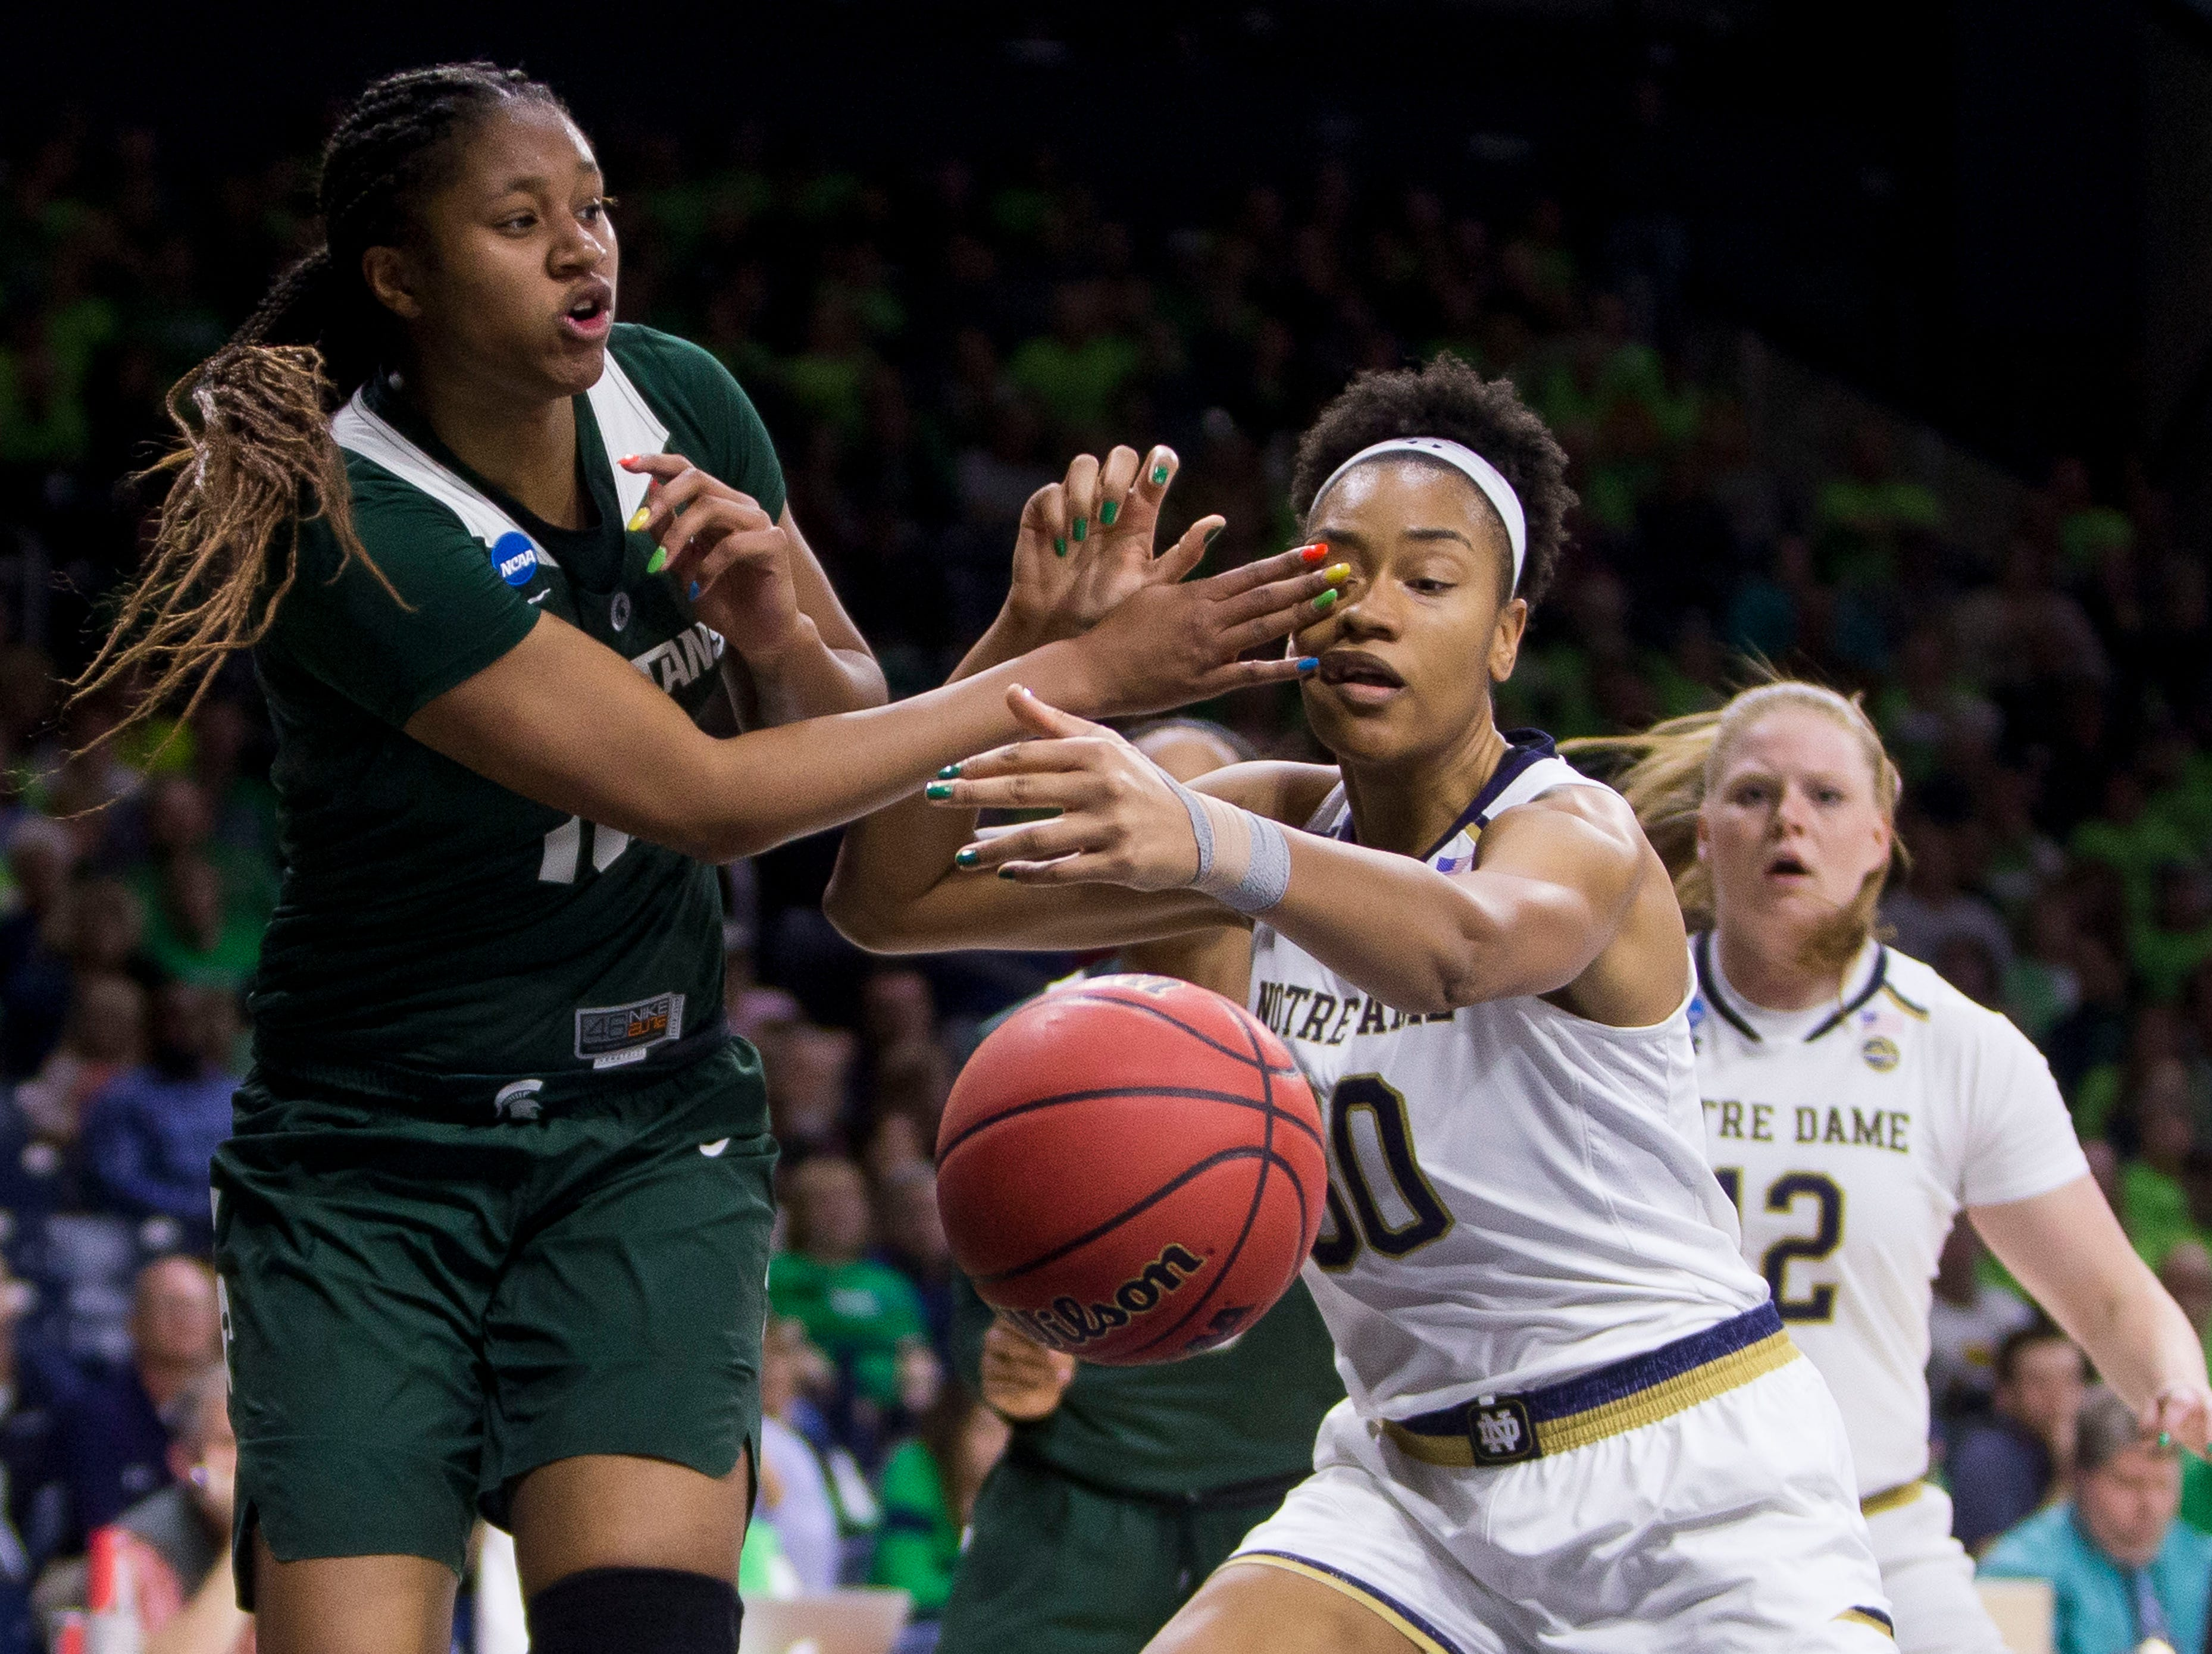 Michigan State's Sidney Cooks (10) hits Notre Dame's Mikayla Vaughn (30) while competing for a rebound during a second-round game in the NCAA women's college basketball tournament in South Bend, Ind., Monday, March 25, 2019. (AP Photo/Robert Franklin)